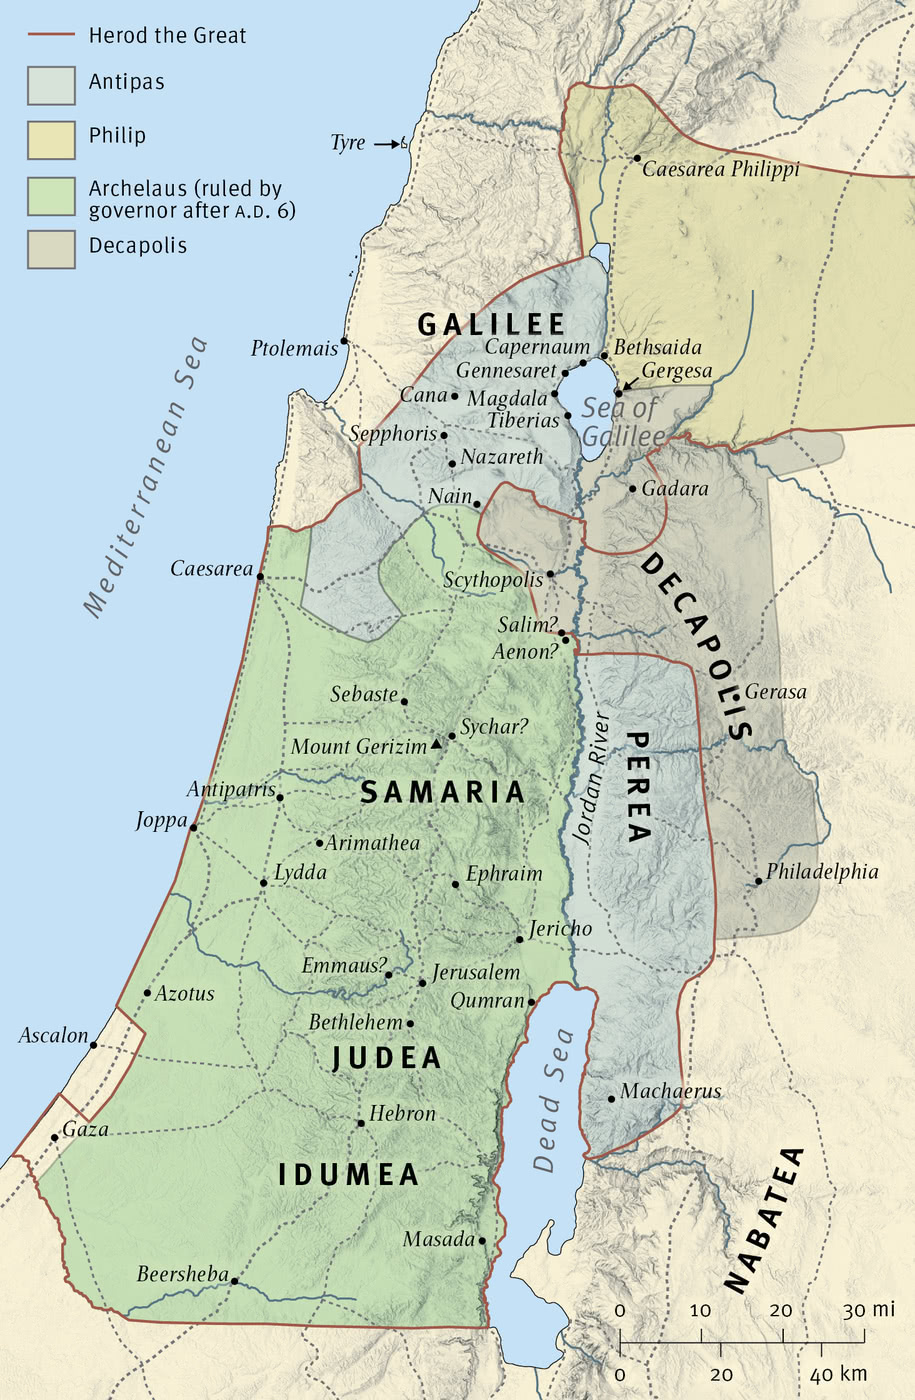 Map 11: Palestine under Roman Rule